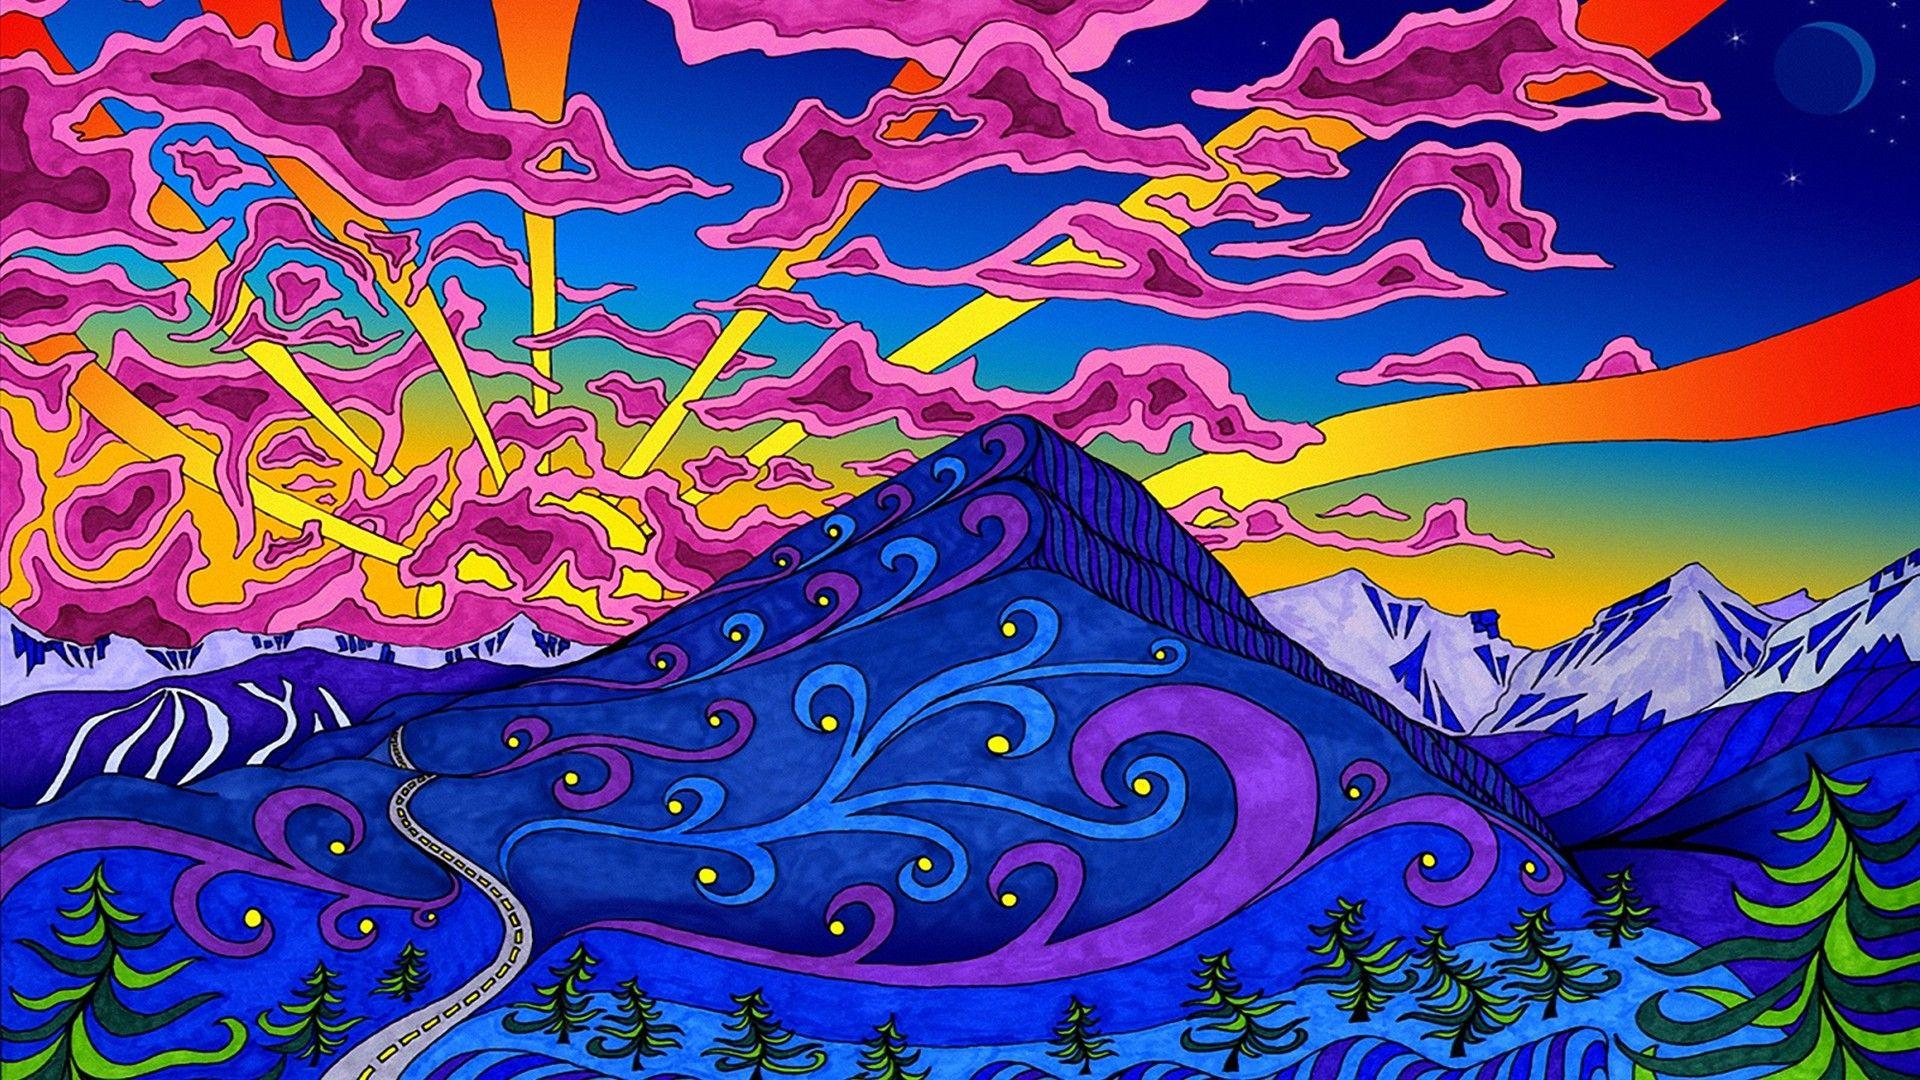 Trippy Cute Hippie Trippy Alien Wallpaper